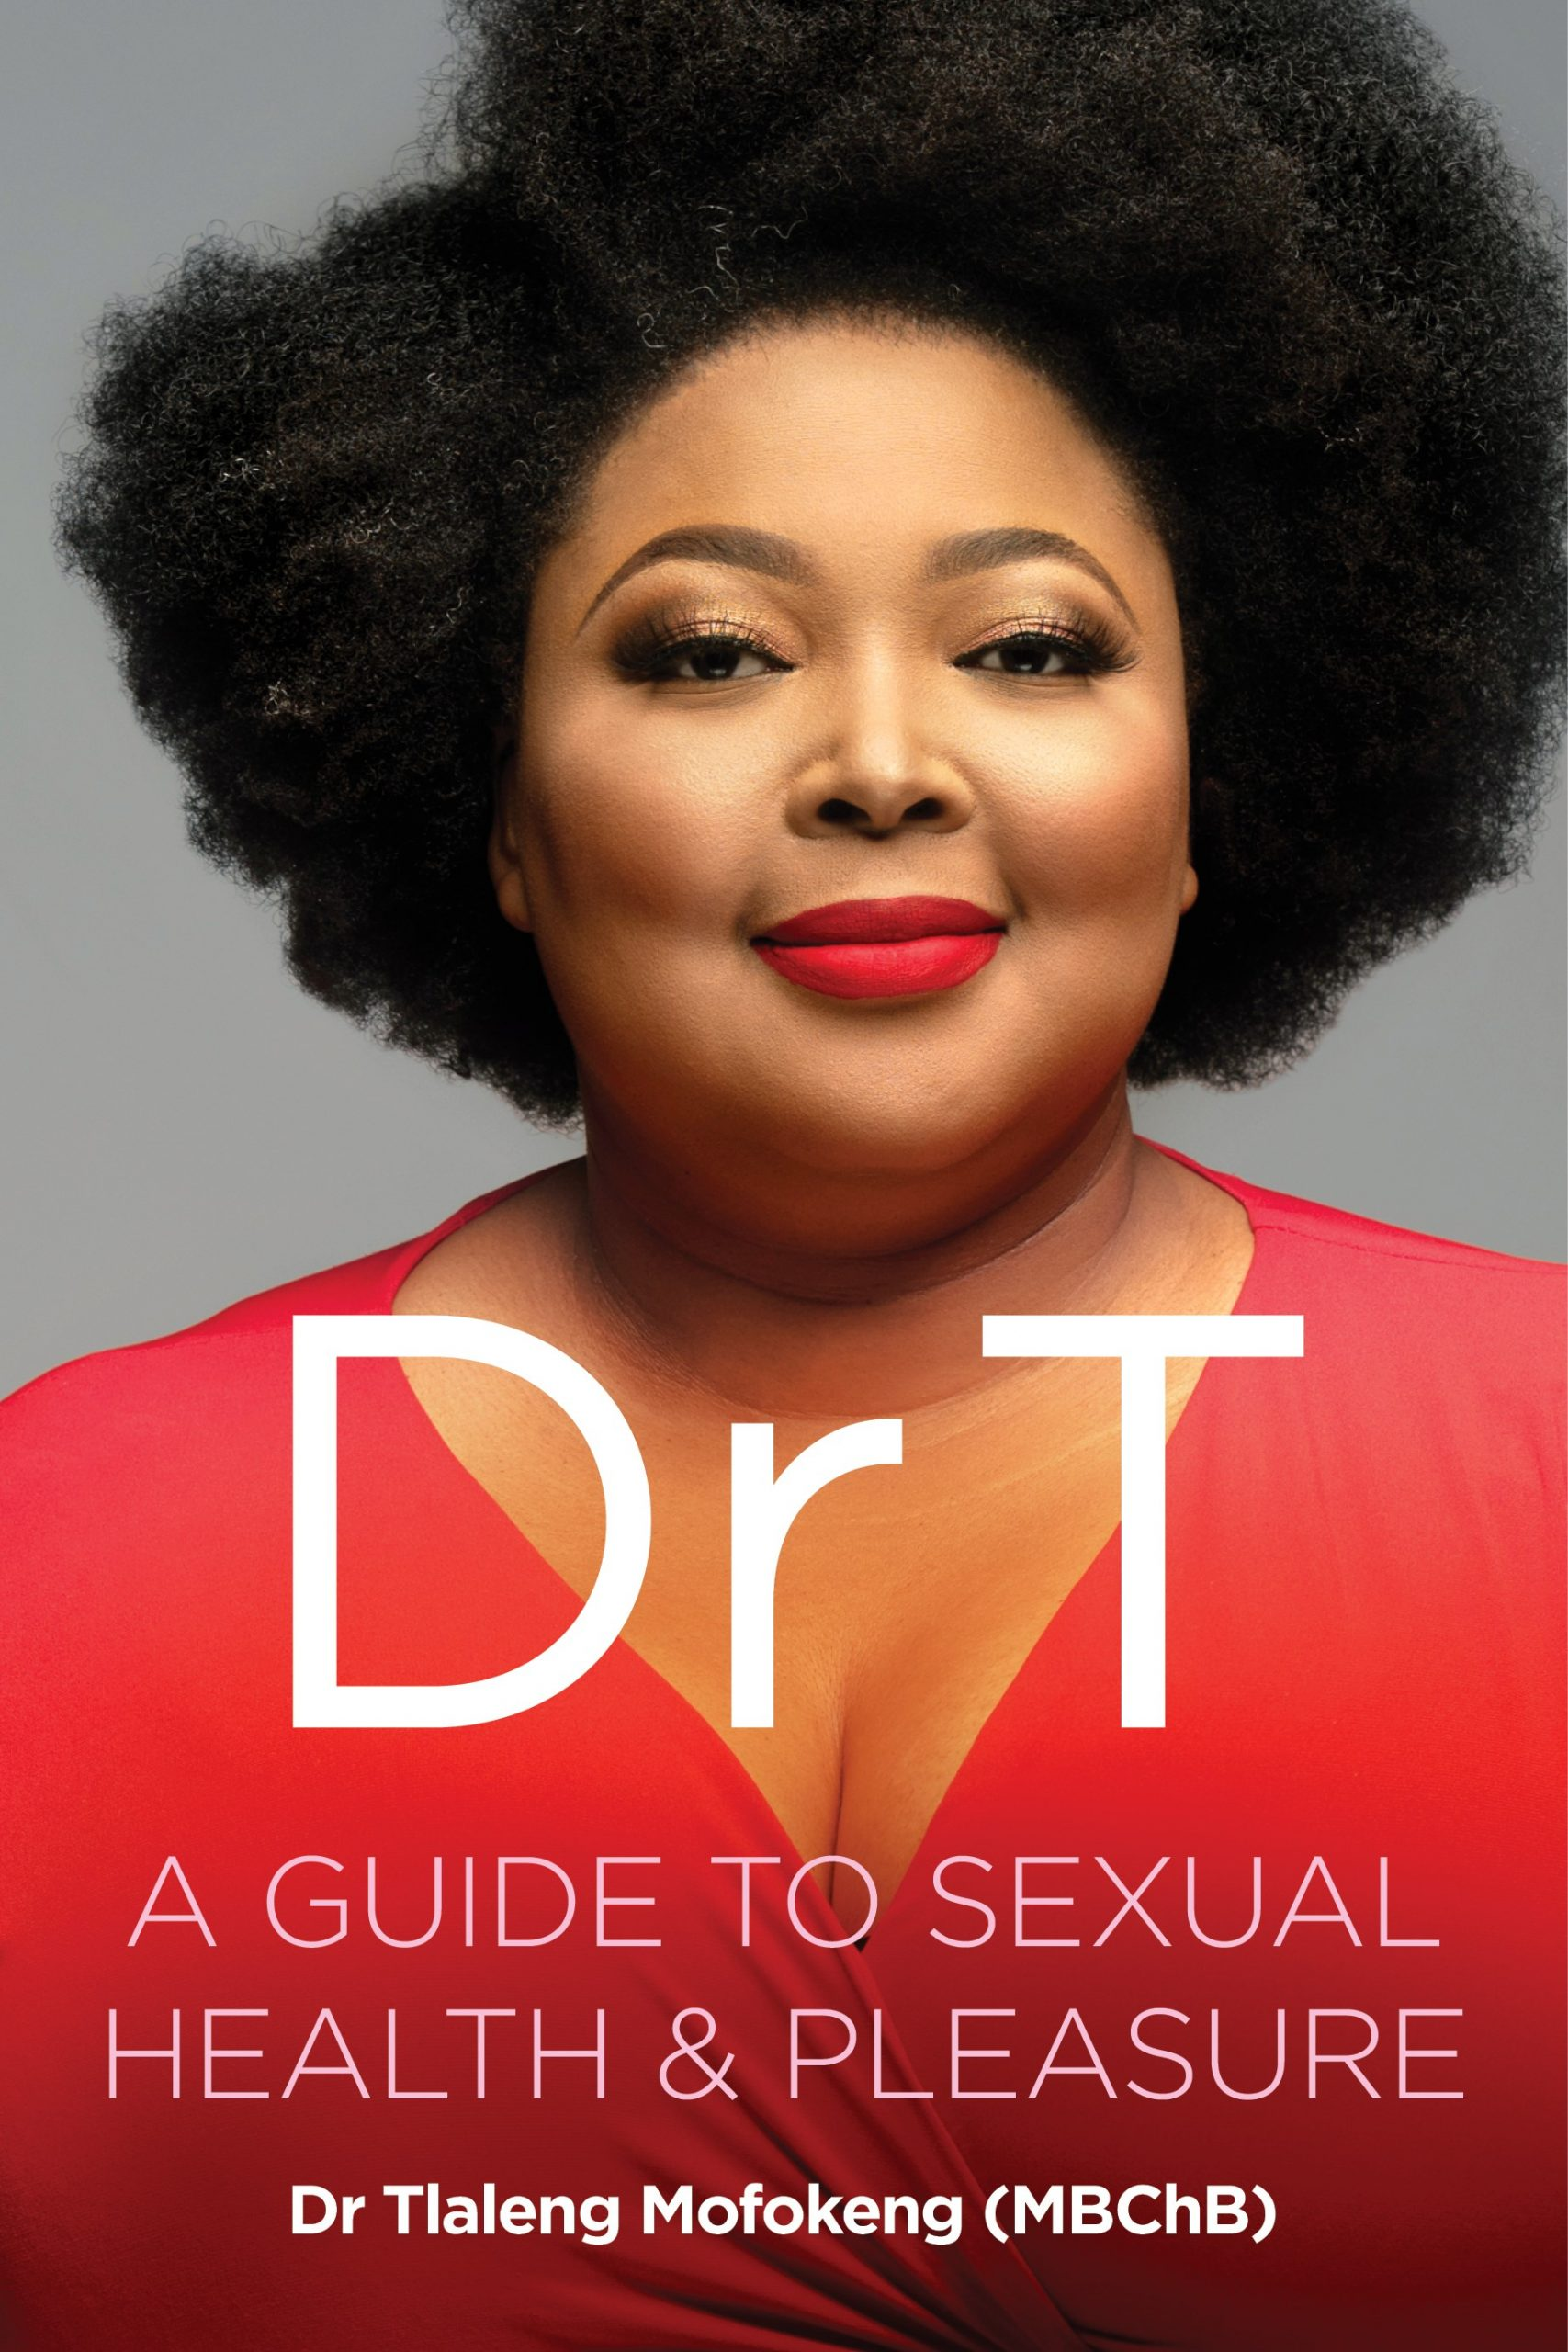 A Guide to Sexual Health and Pleasure